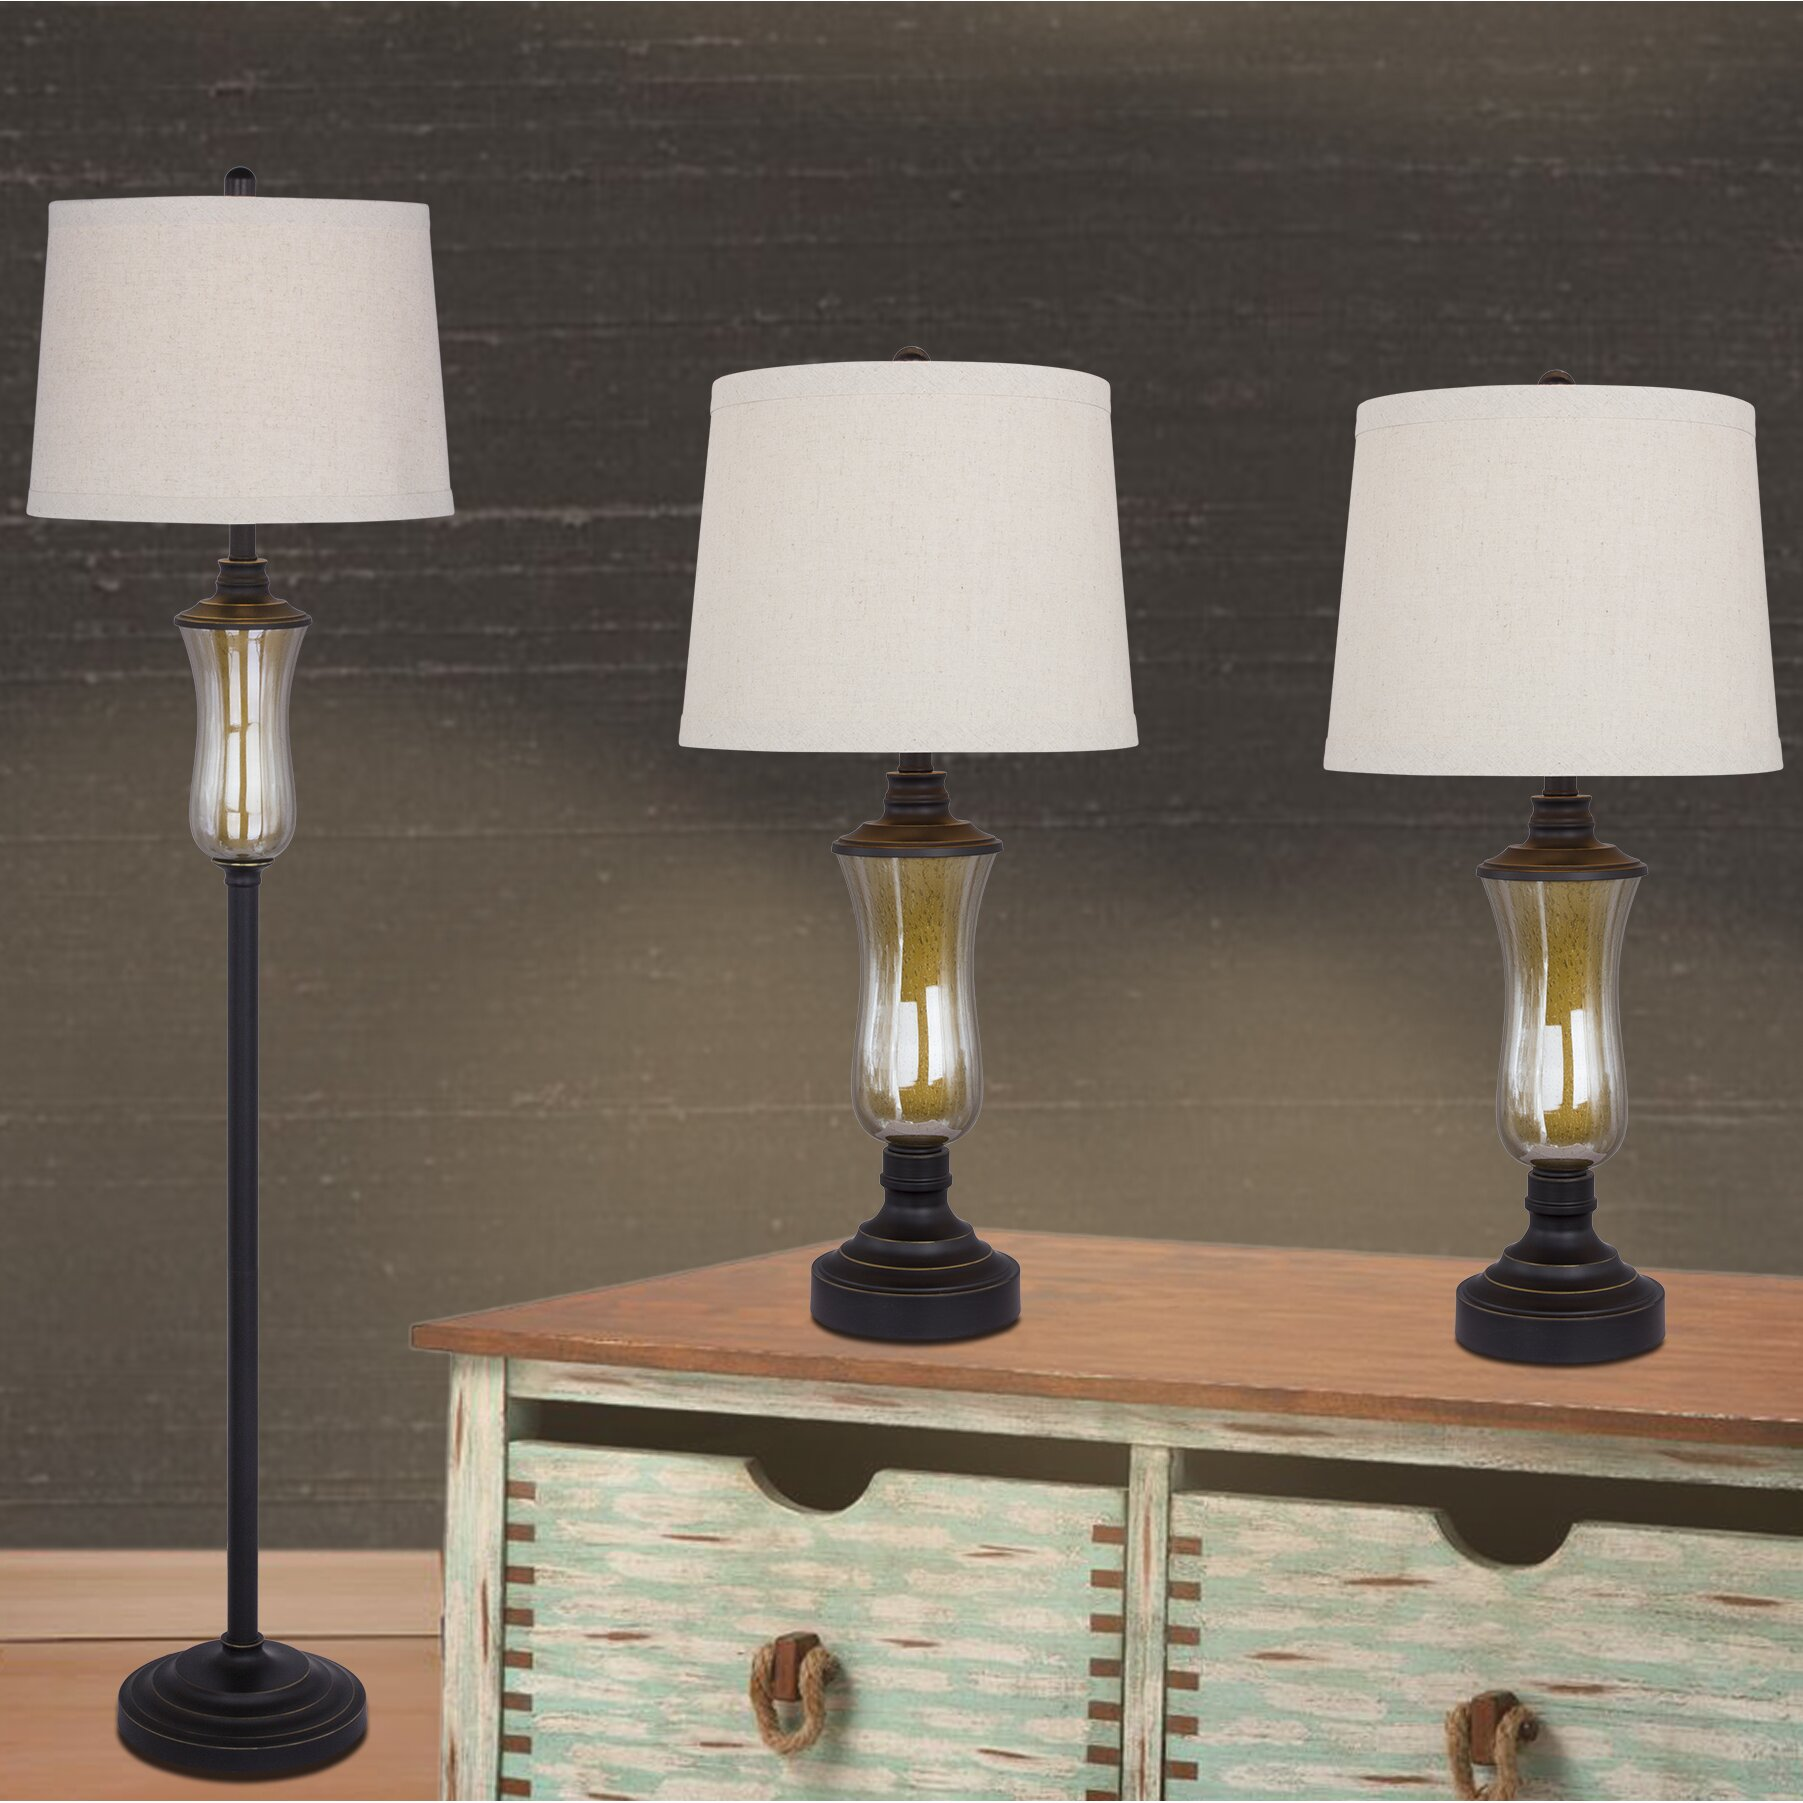 lighting lamps table lamps fangio sku fg2126. Black Bedroom Furniture Sets. Home Design Ideas